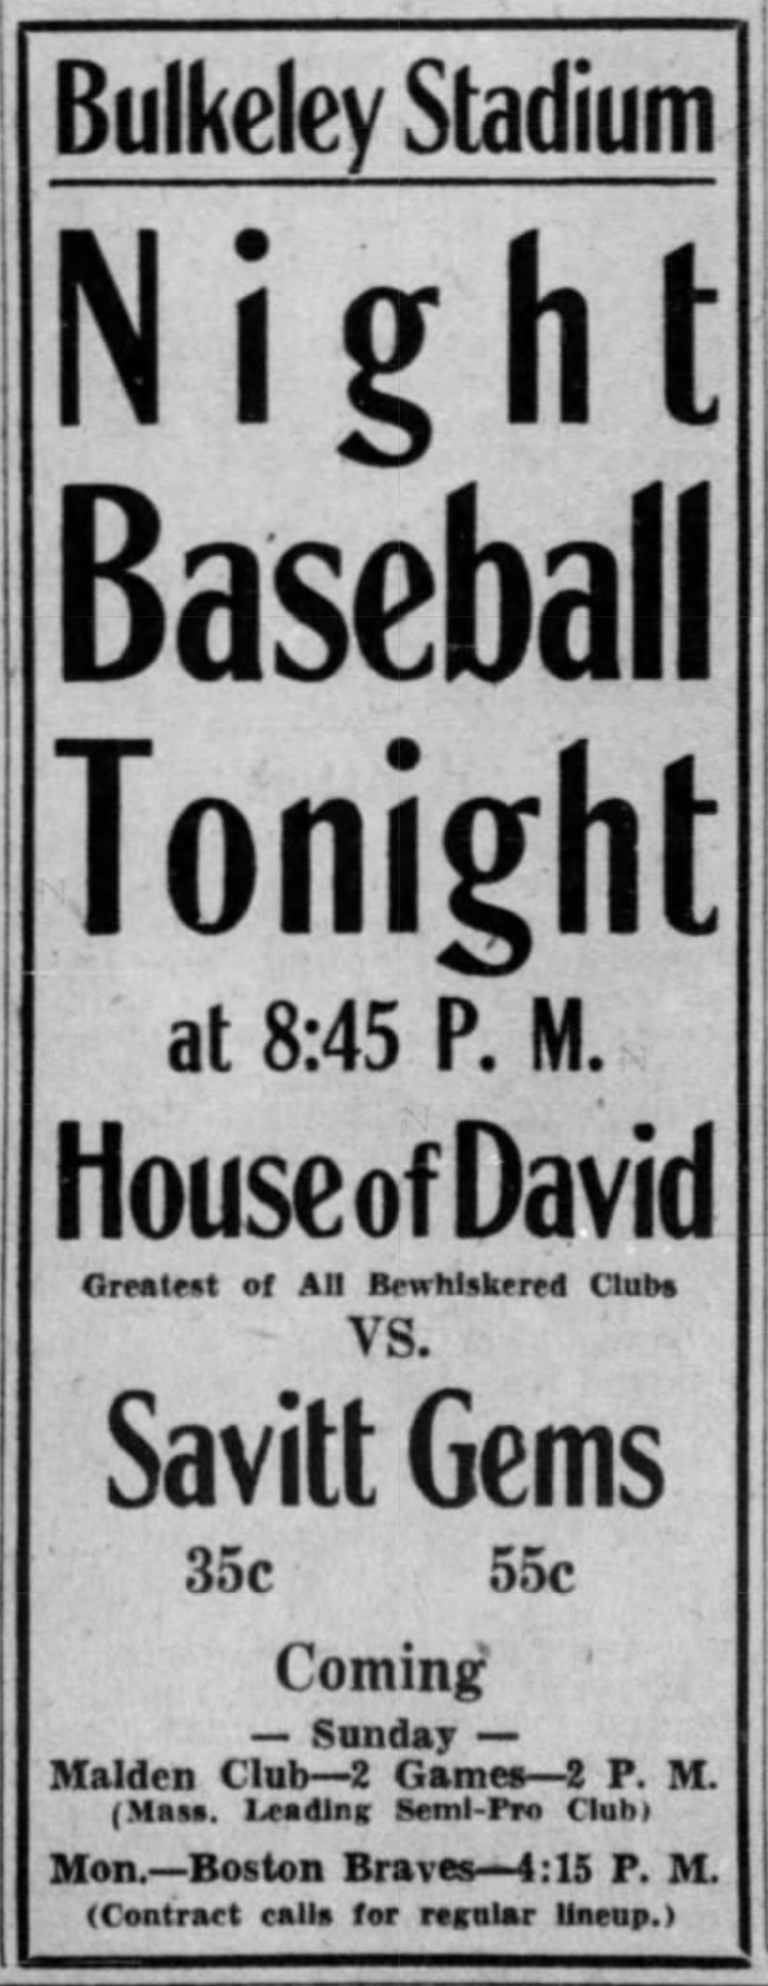 Savitt Gems vs. House of David, 1933.